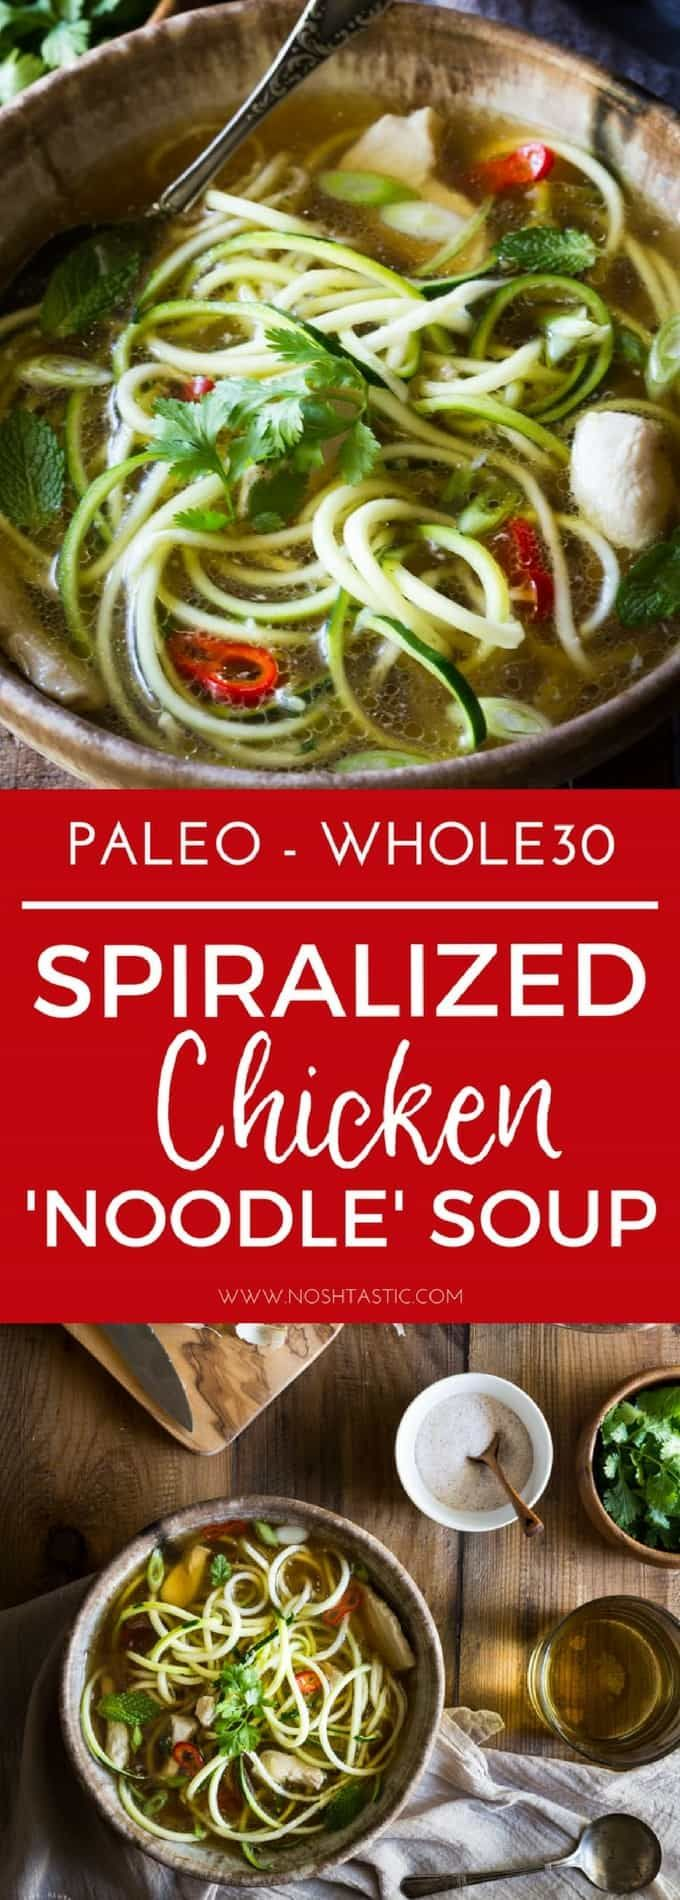 Paleo Chicken Noodle Soup with zucchini noodles (or zoodles)  made in 20 MINUTES! It's packed with flavor, is healthy, low carb, whole30 and gluten free too! #paleo #whole30 #lowcarb #soup #keto